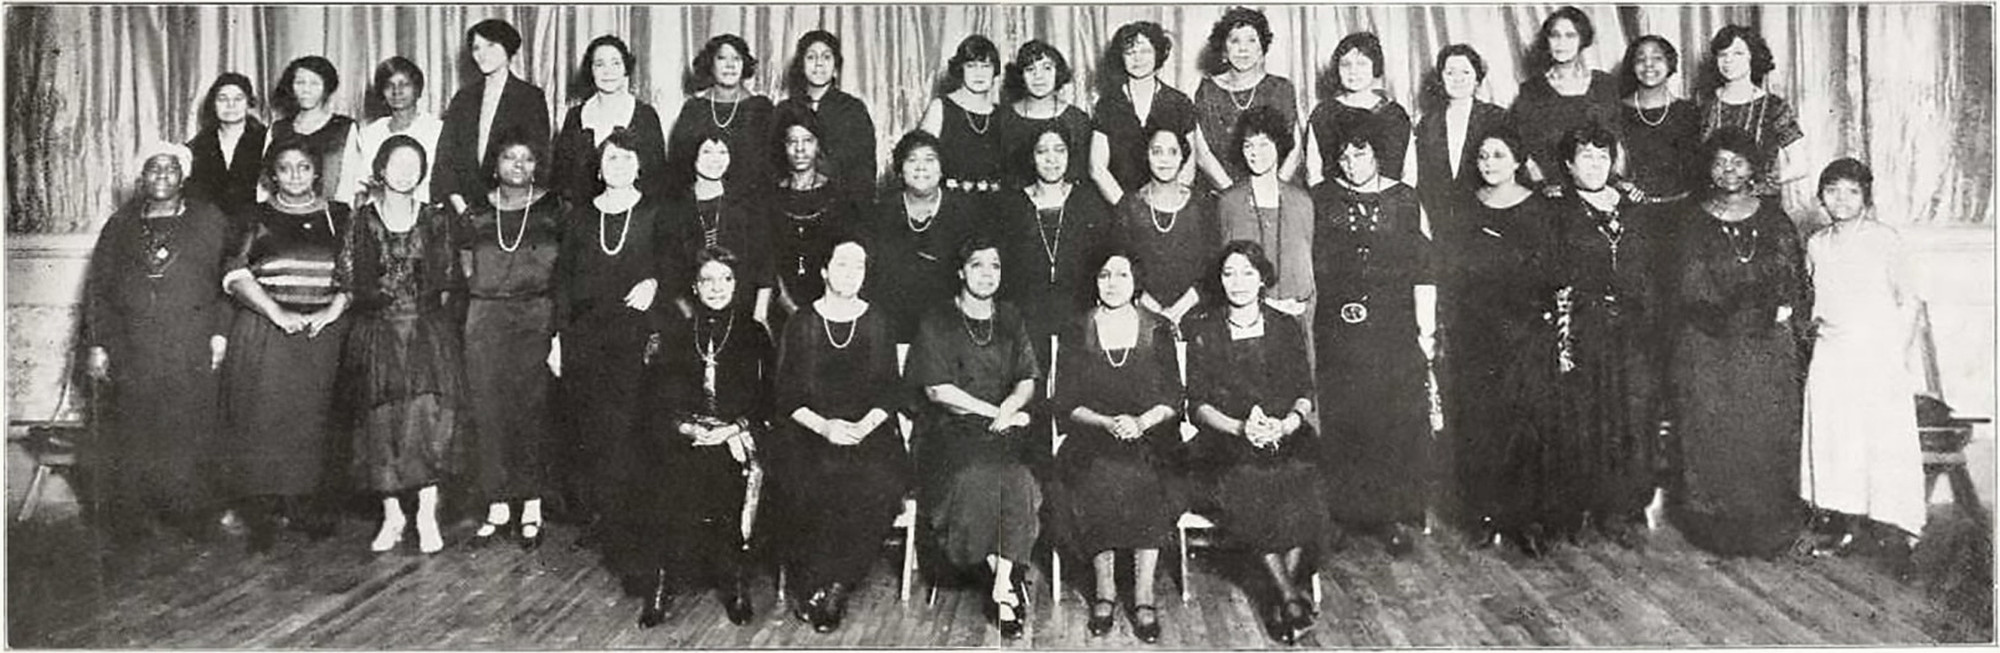 Photograph of members of The Utopia Neighborhood Club, New York City. As published in The Crisis, March 1923. Reference image for Steffani Jemison's Promise Machine, 2014–15